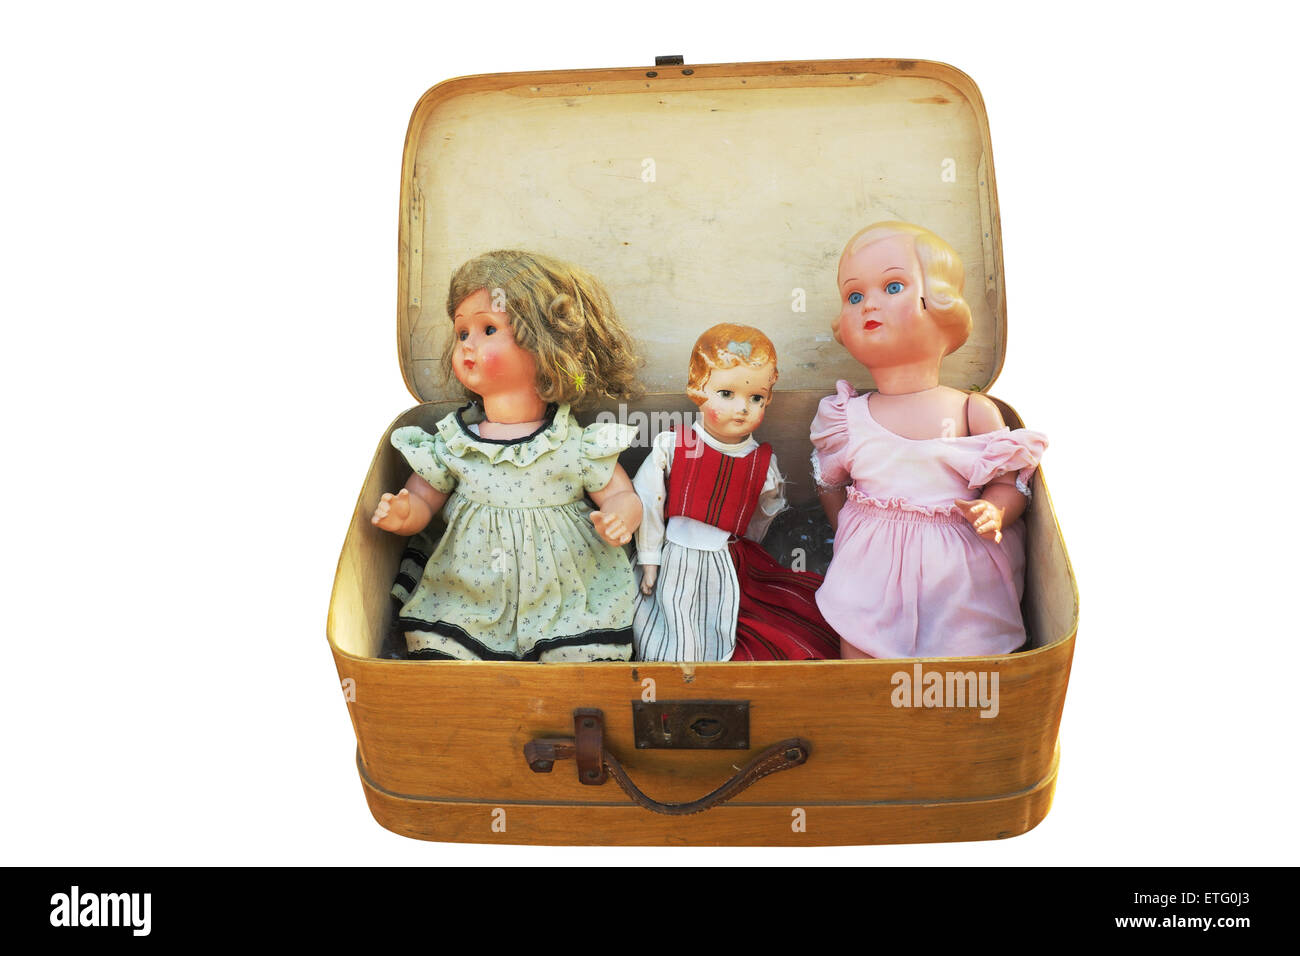 three vintage doll in an old wooden suitcase - Stock Image